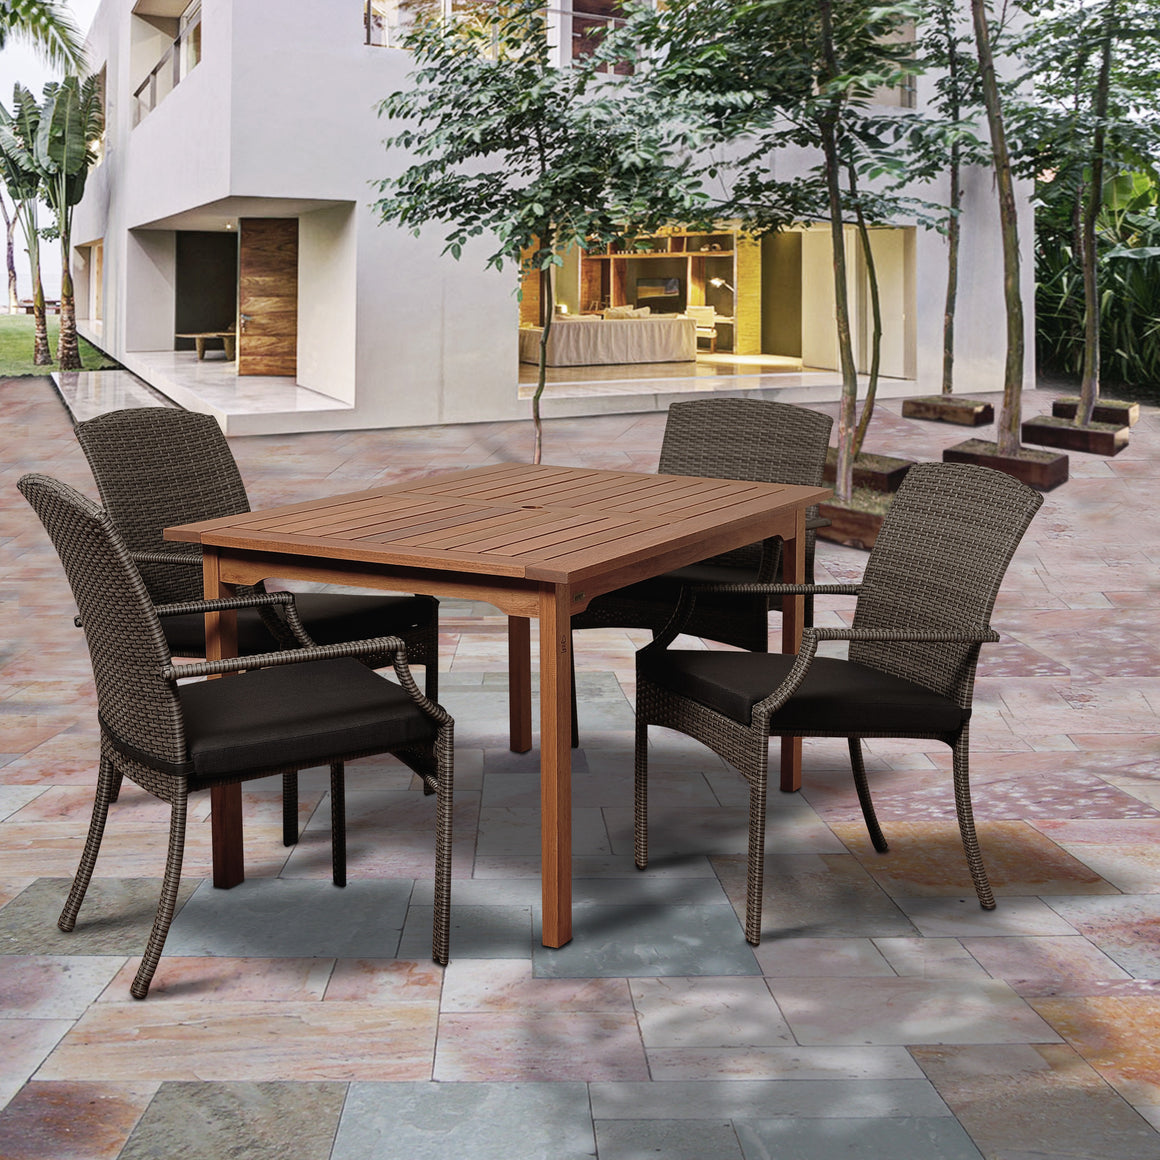 Warner 5 Piece Eucalyptus/Wicker Rectangular Dining Set with Grey Cushions , International Home Miami- grayburd